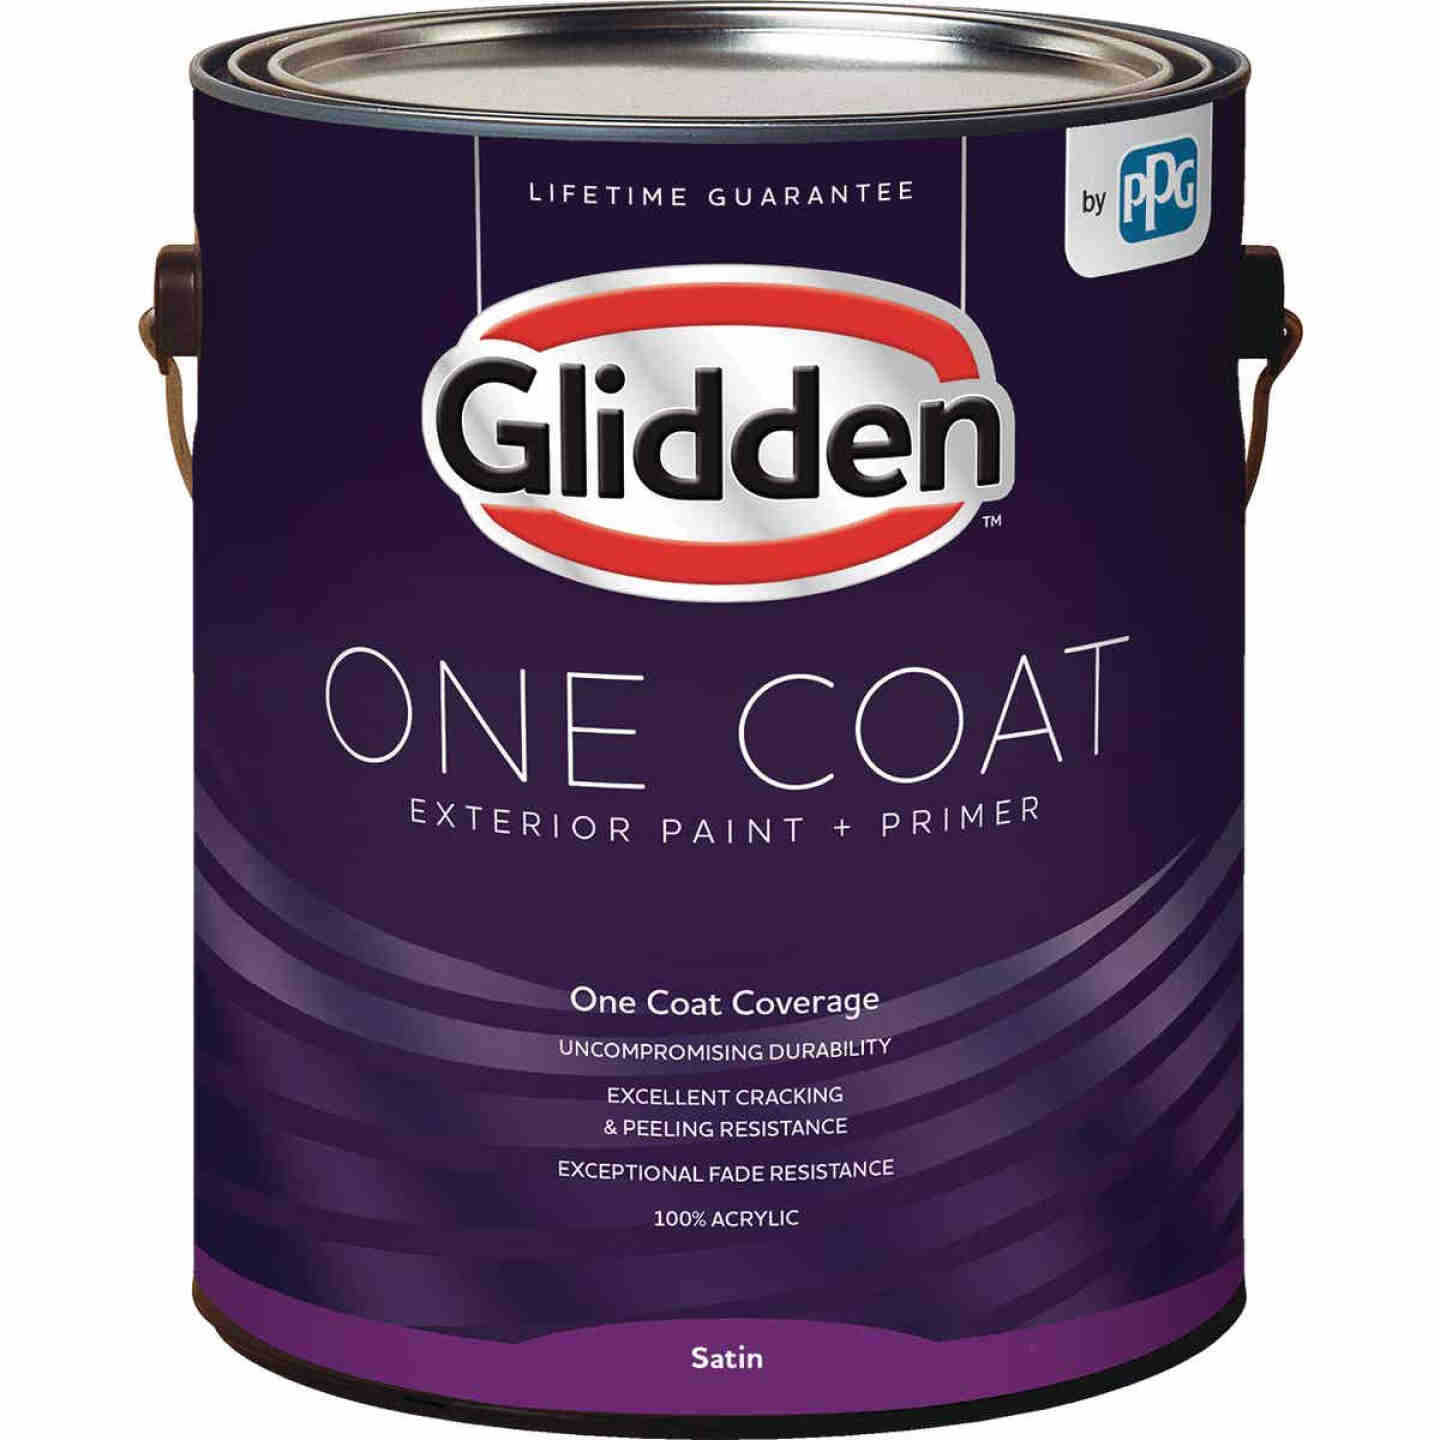 Glidden One Coat Exterior Paint + Primer Satin White & Pastel Base 1 Gallon Image 1